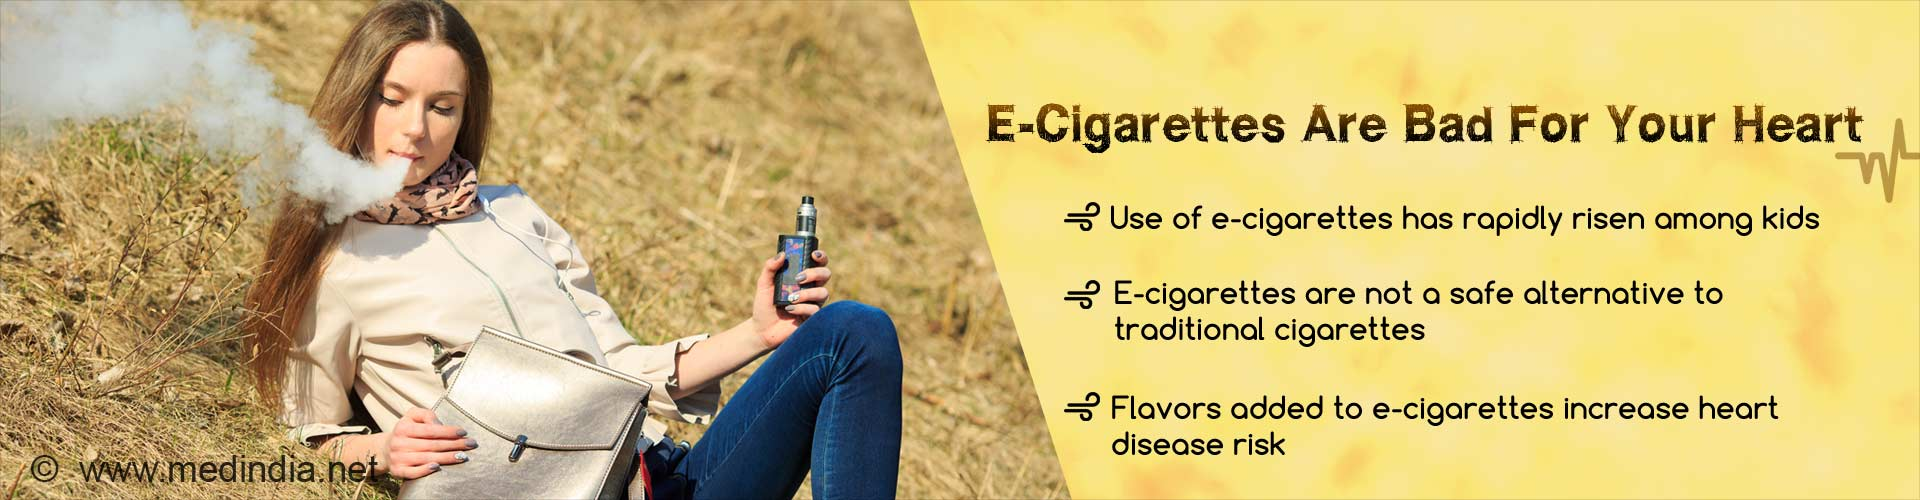 E-cigarettes are bad for your heart. Use of e-cigarettes has rapidly risen among kids. E-cigarettes are not a safe alternative to traditional cigarettes. Flavors added to e-cigarettes increase heart disease risk.